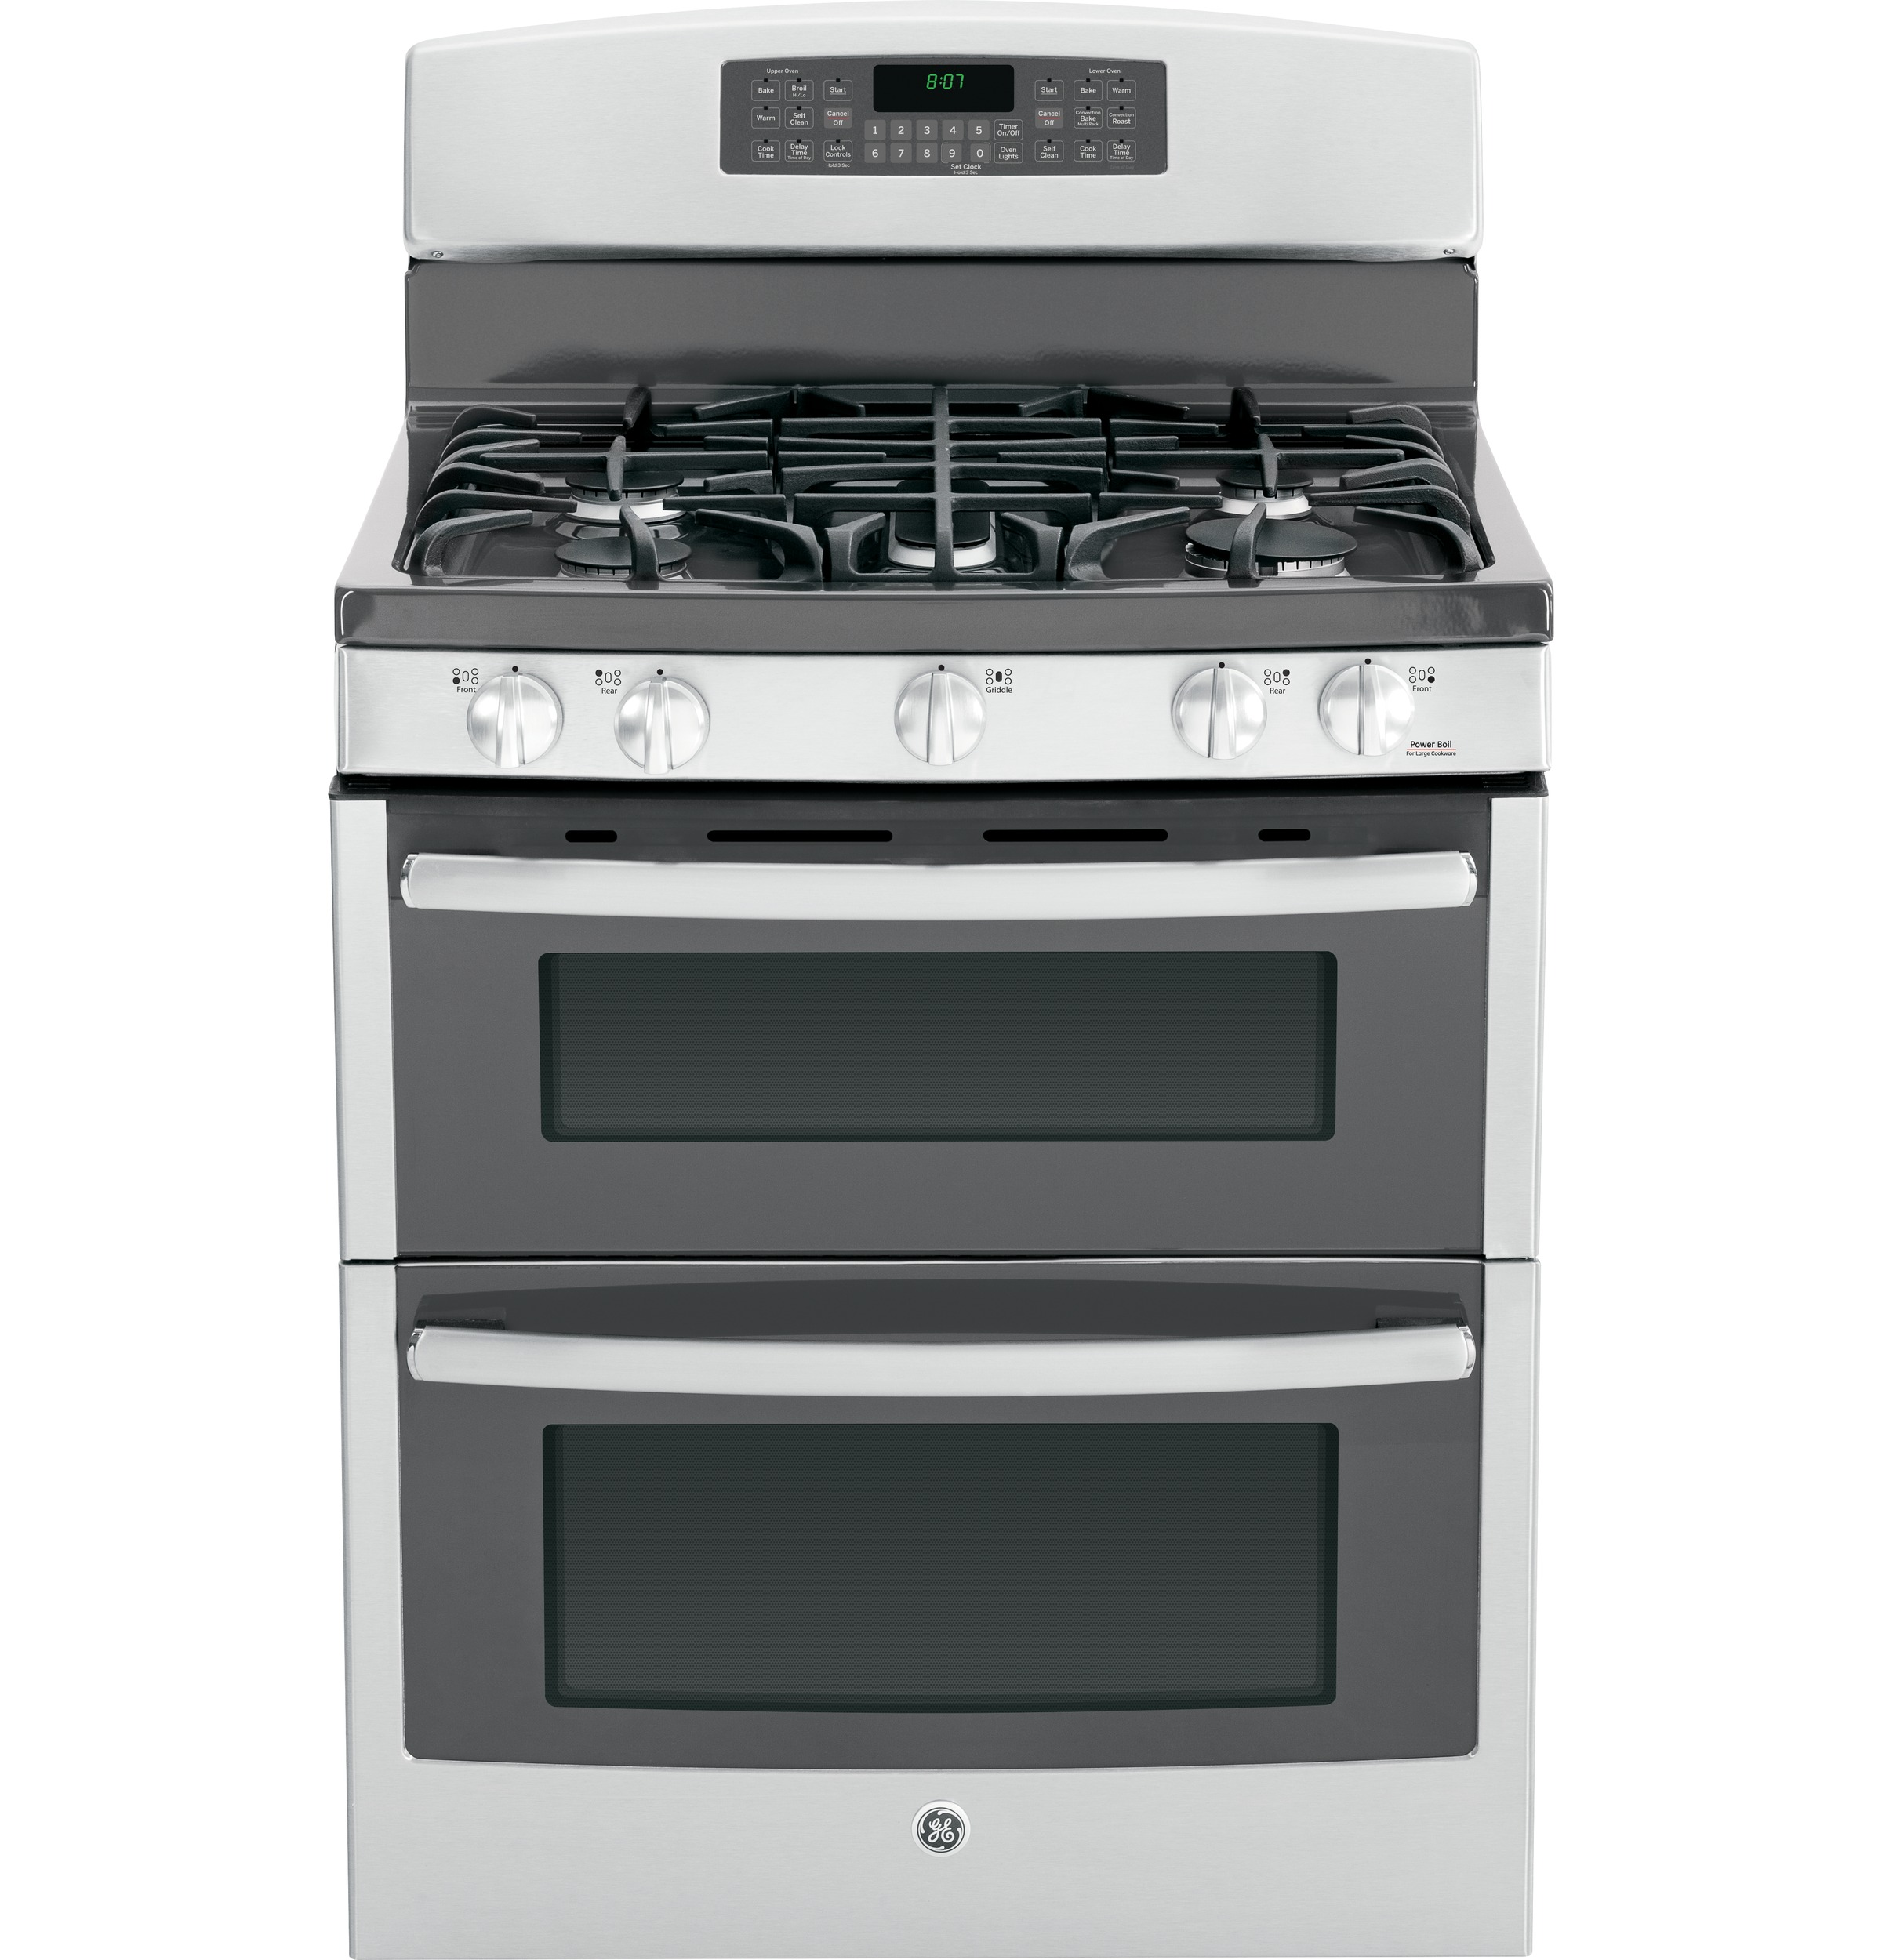 ge 30 free standing gas double oven range with convection jgb870sefss ge appliances. Black Bedroom Furniture Sets. Home Design Ideas